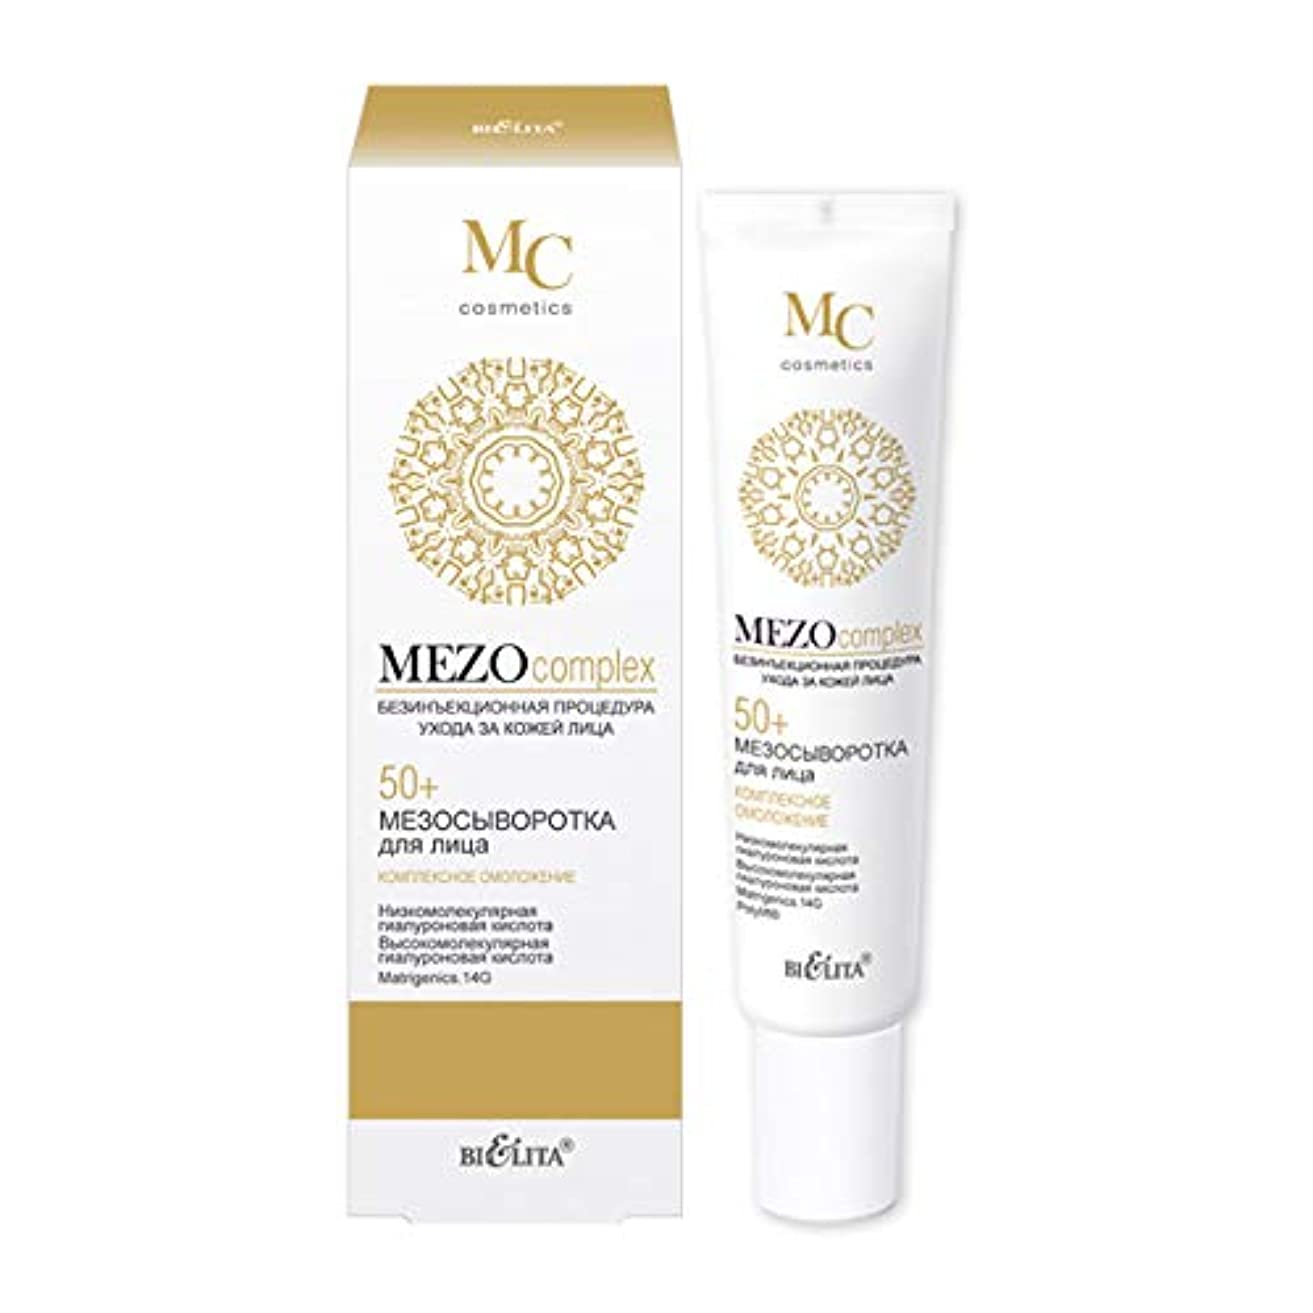 眠り上記の頭と肩パスポートMezo complex | Mezo Serum Complex 50+ | Non-injection facial skin care procedure | Hyaluronic acid | Matrigenics.14G | Polylift | Active formula | 20 ml